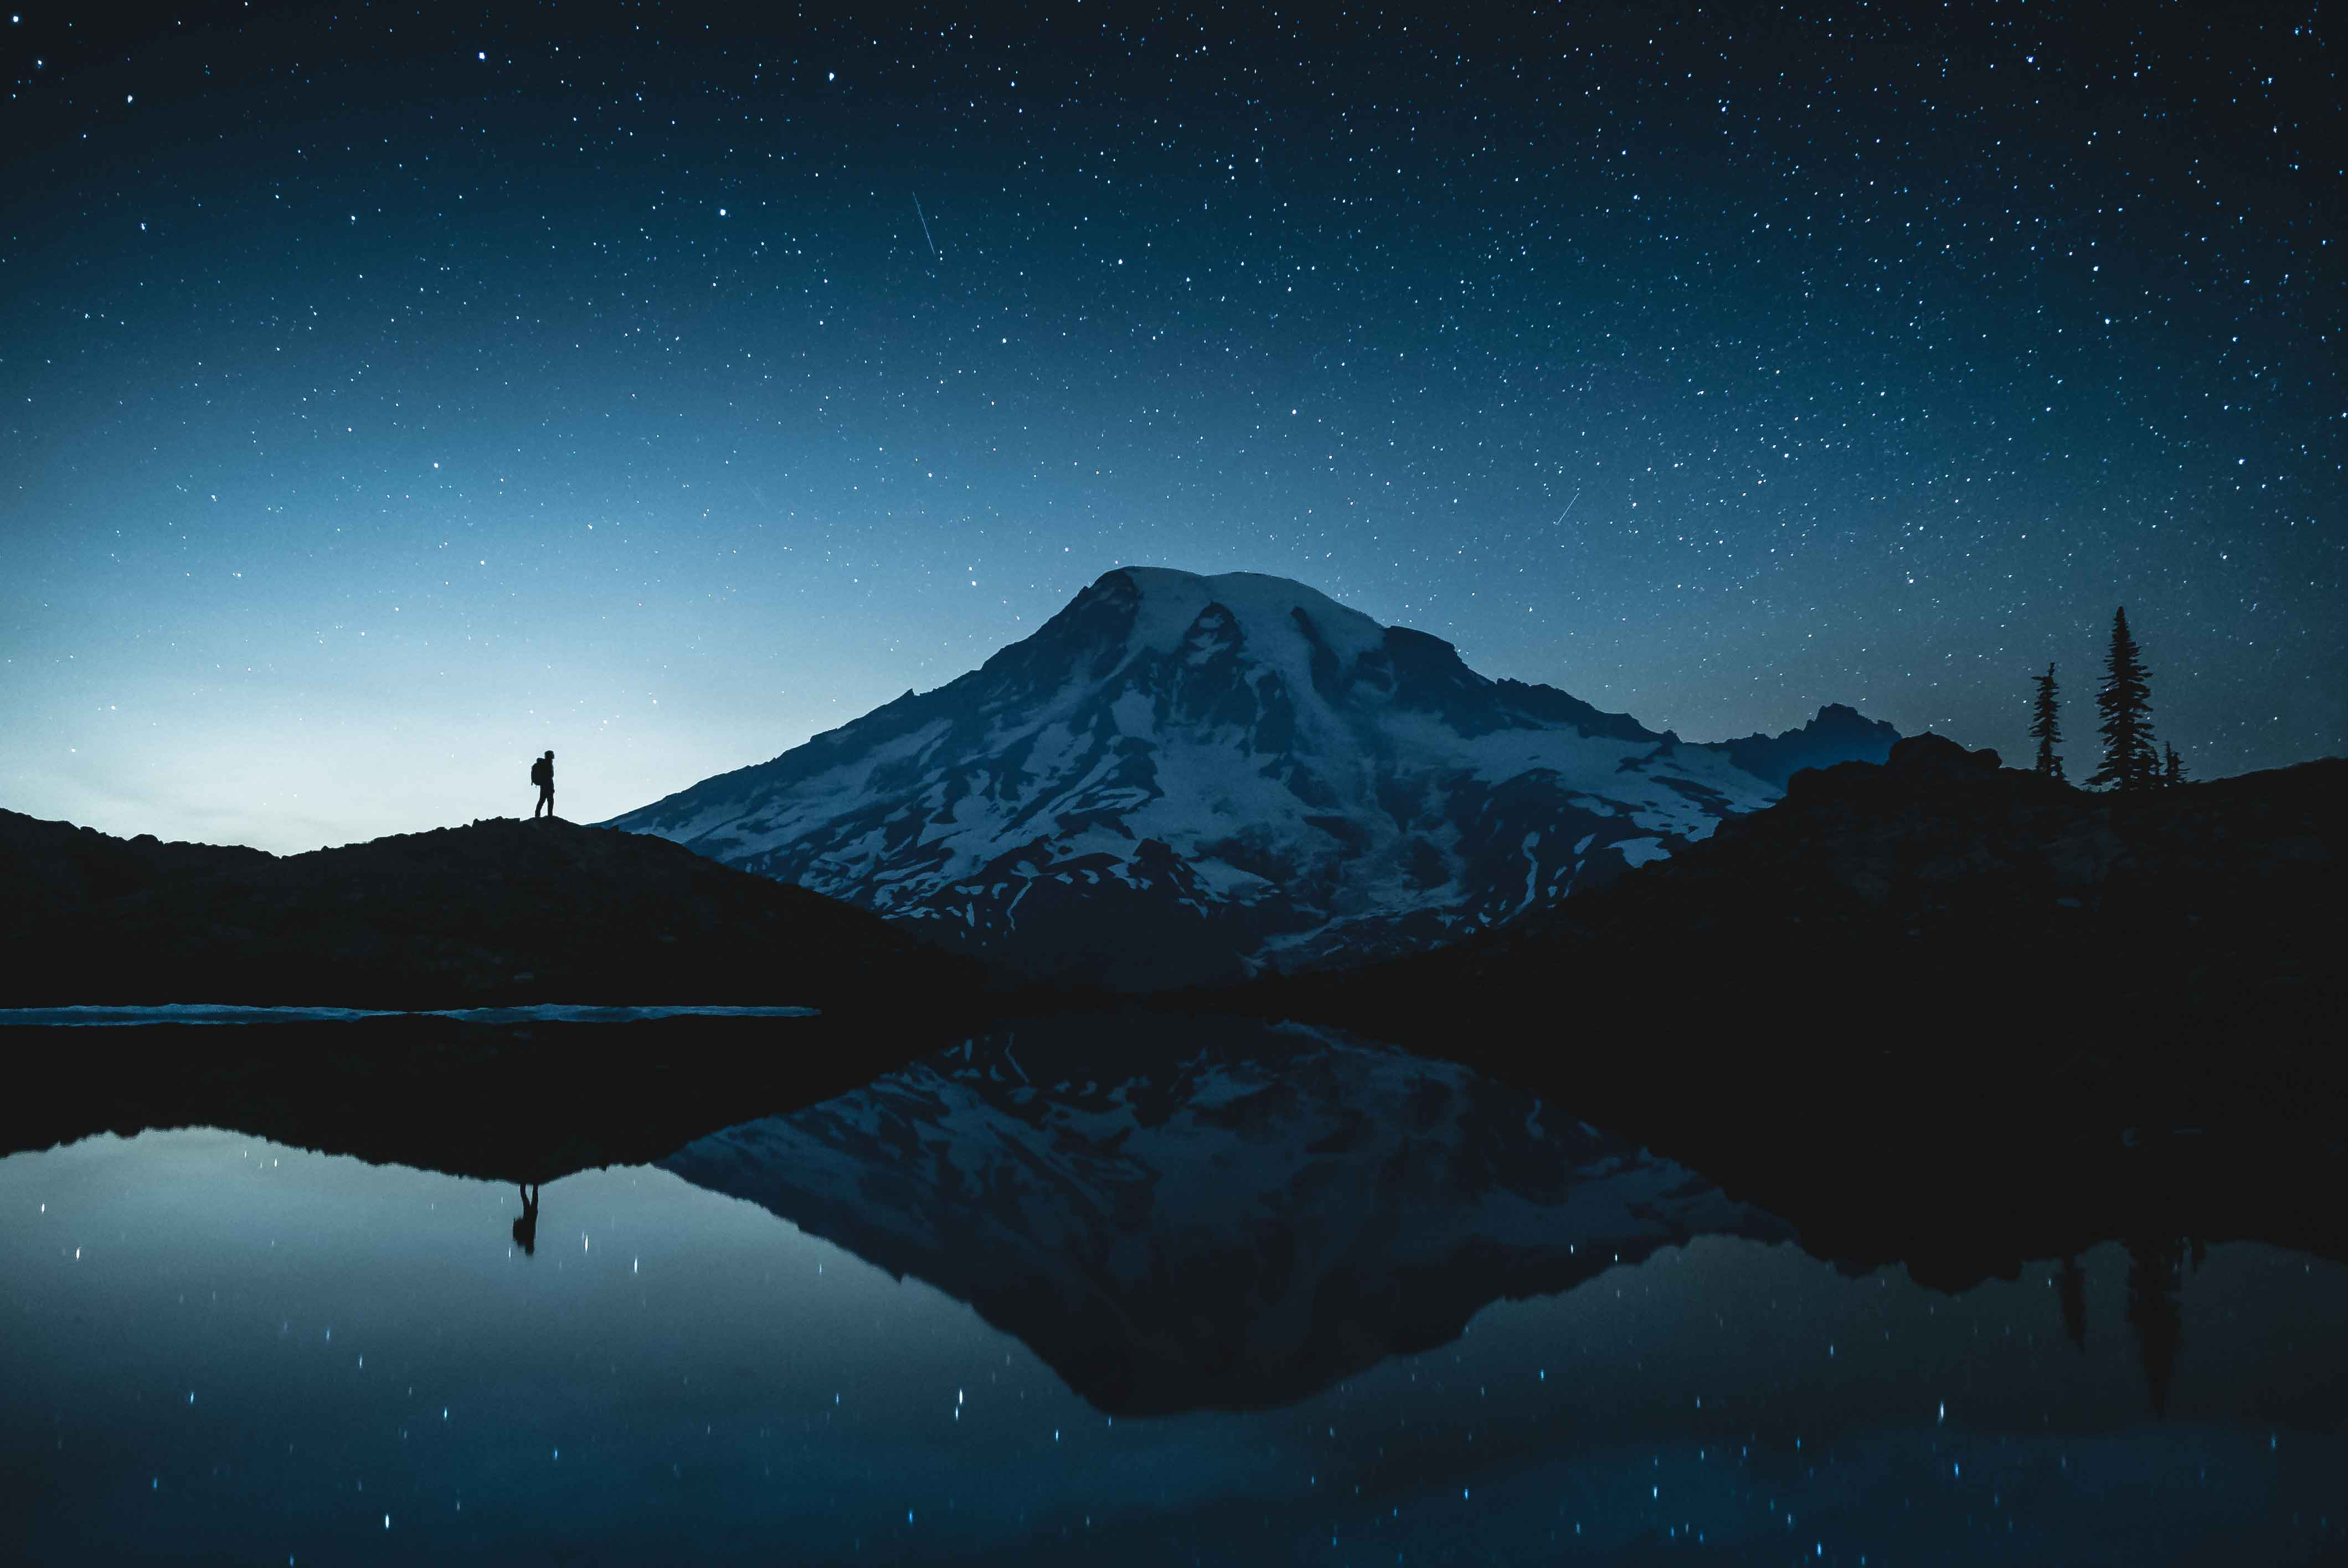 Star photography of a person standing reflected in a small glacier tarn on Mount Rainier, Washington below the stars